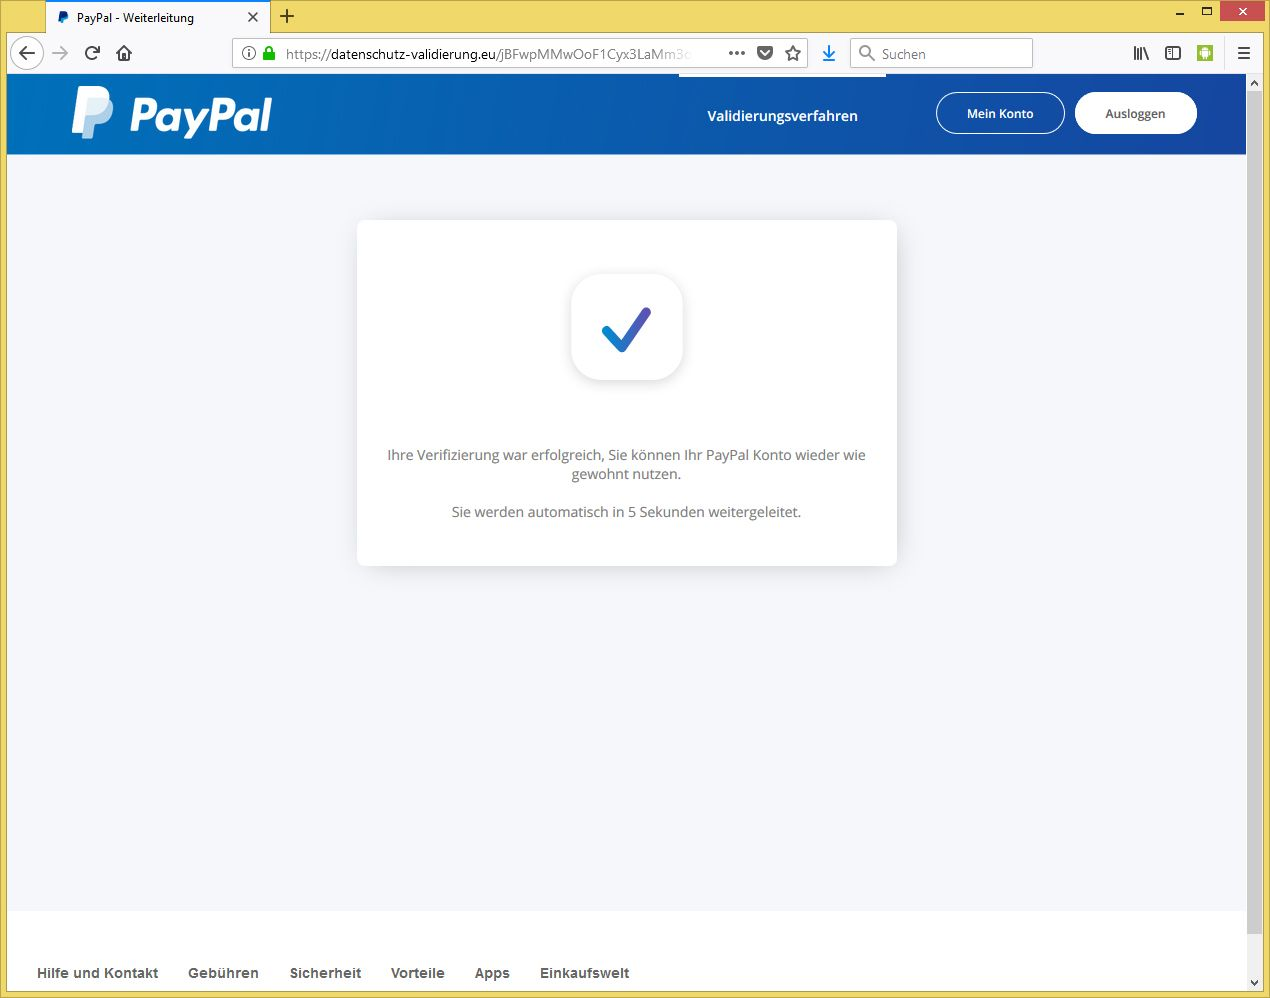 Paypal Personalausweis